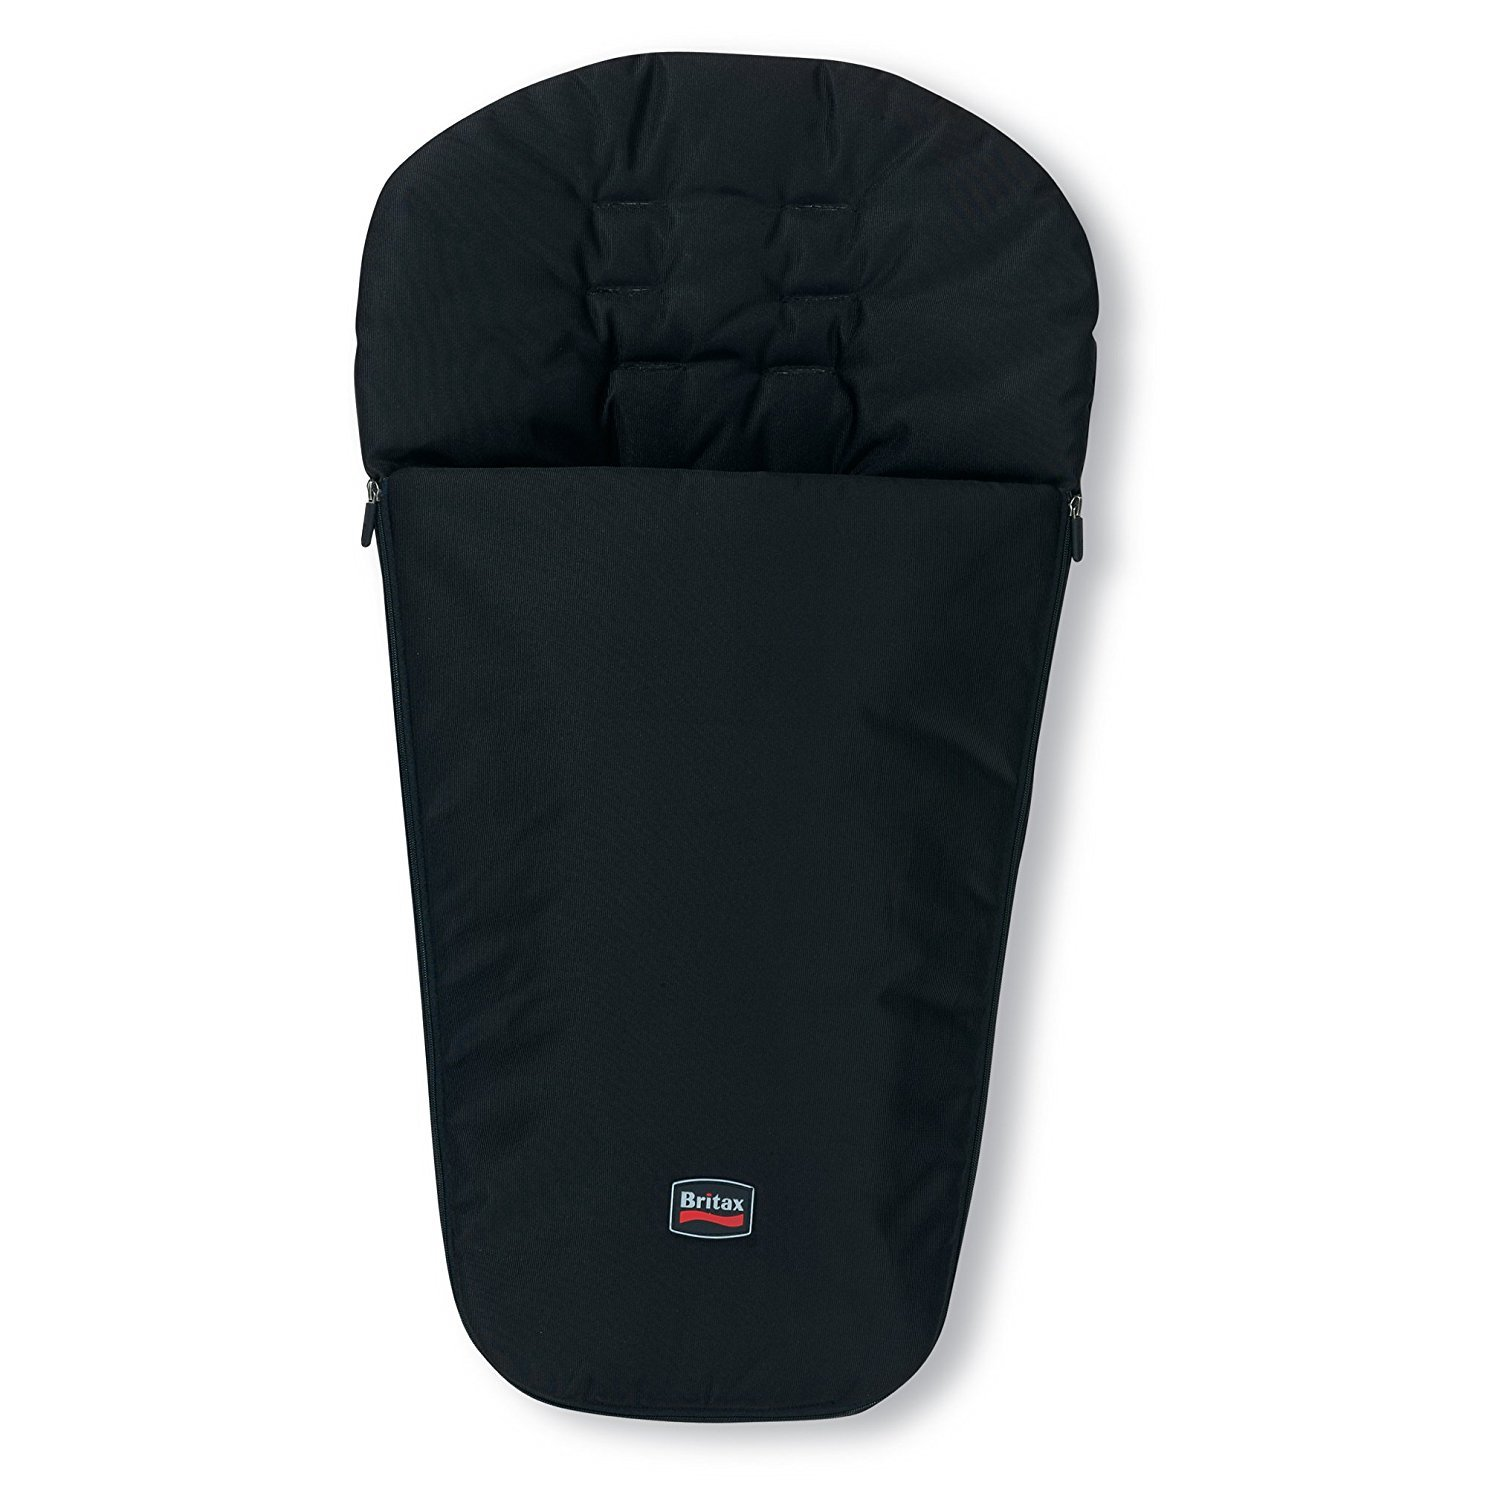 Britax Footmuff - Black